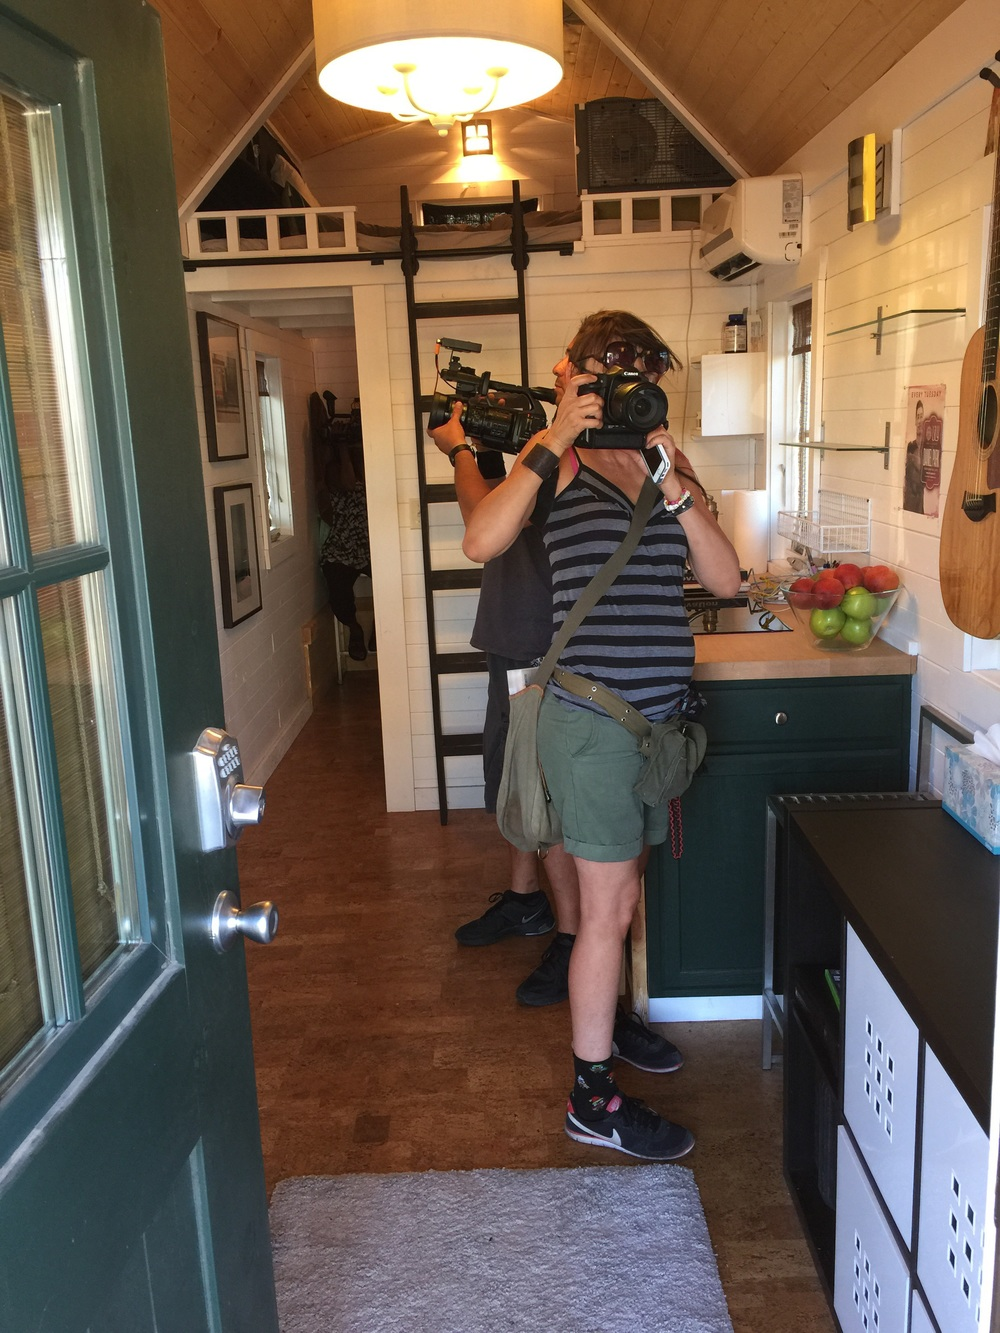 Surprising Hgtv Filming My Tiny House Daniel Park Music Largest Home Design Picture Inspirations Pitcheantrous